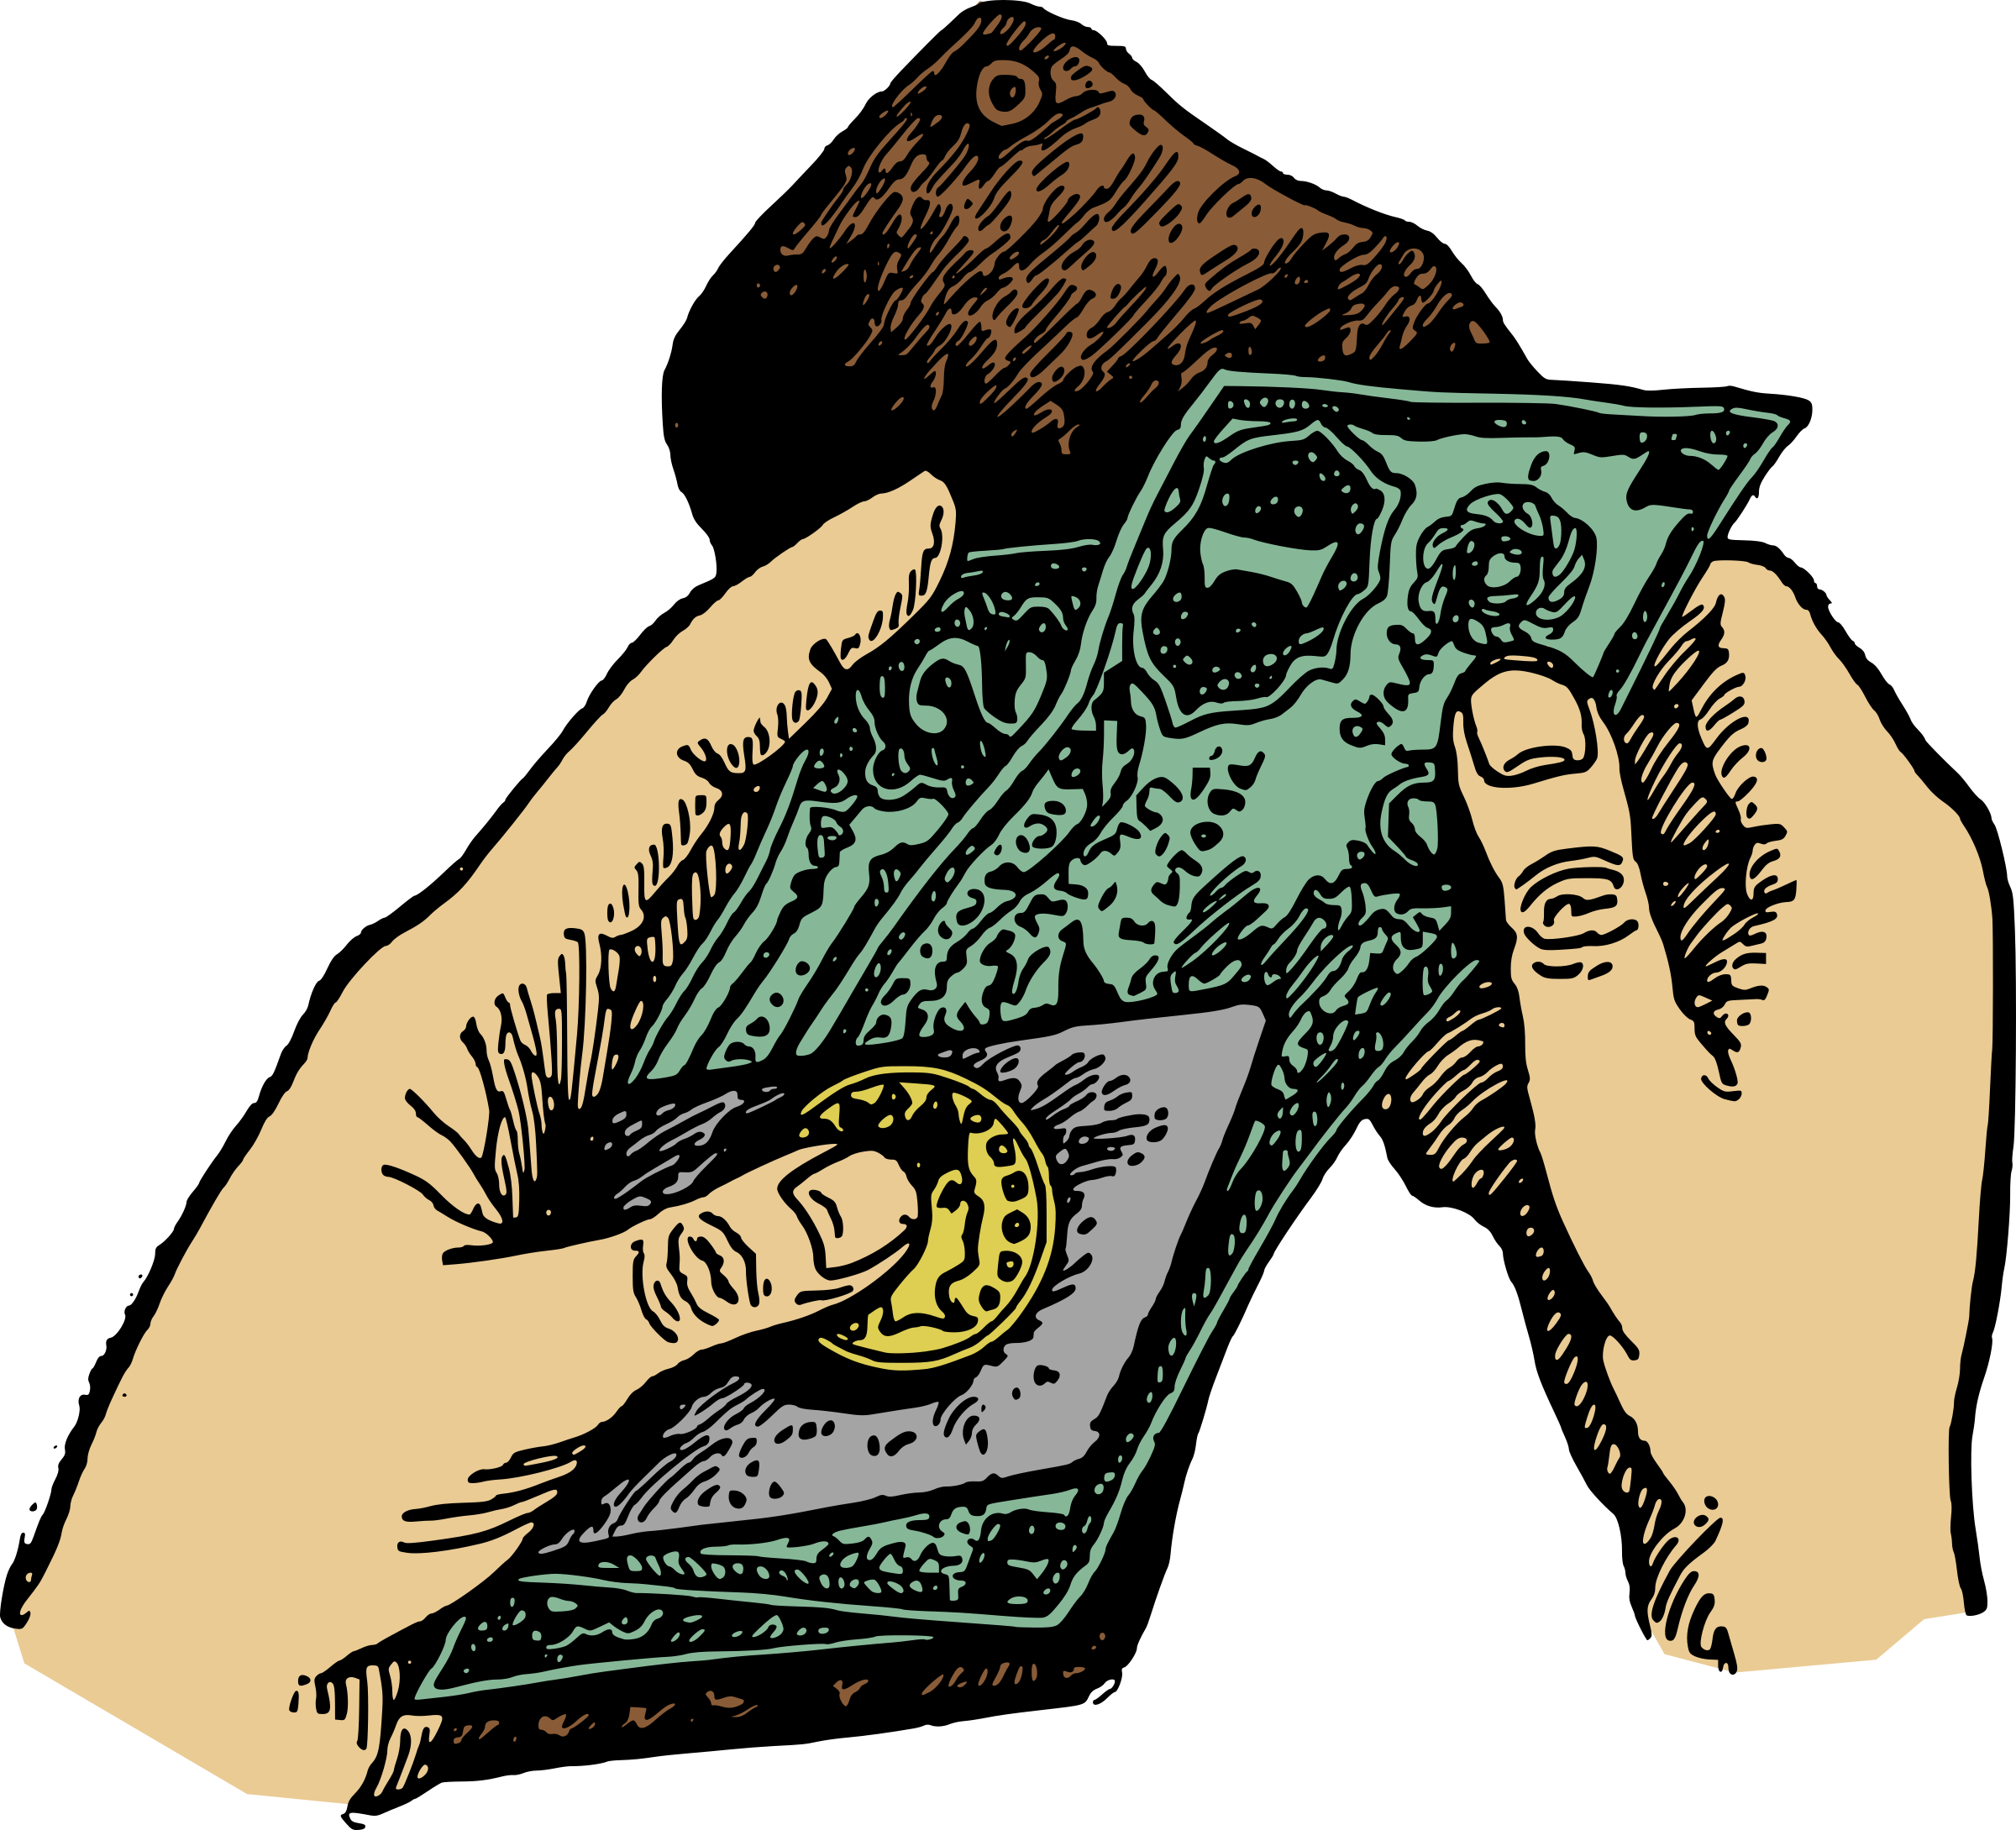 Hands and money icons. Wallet clipart hand